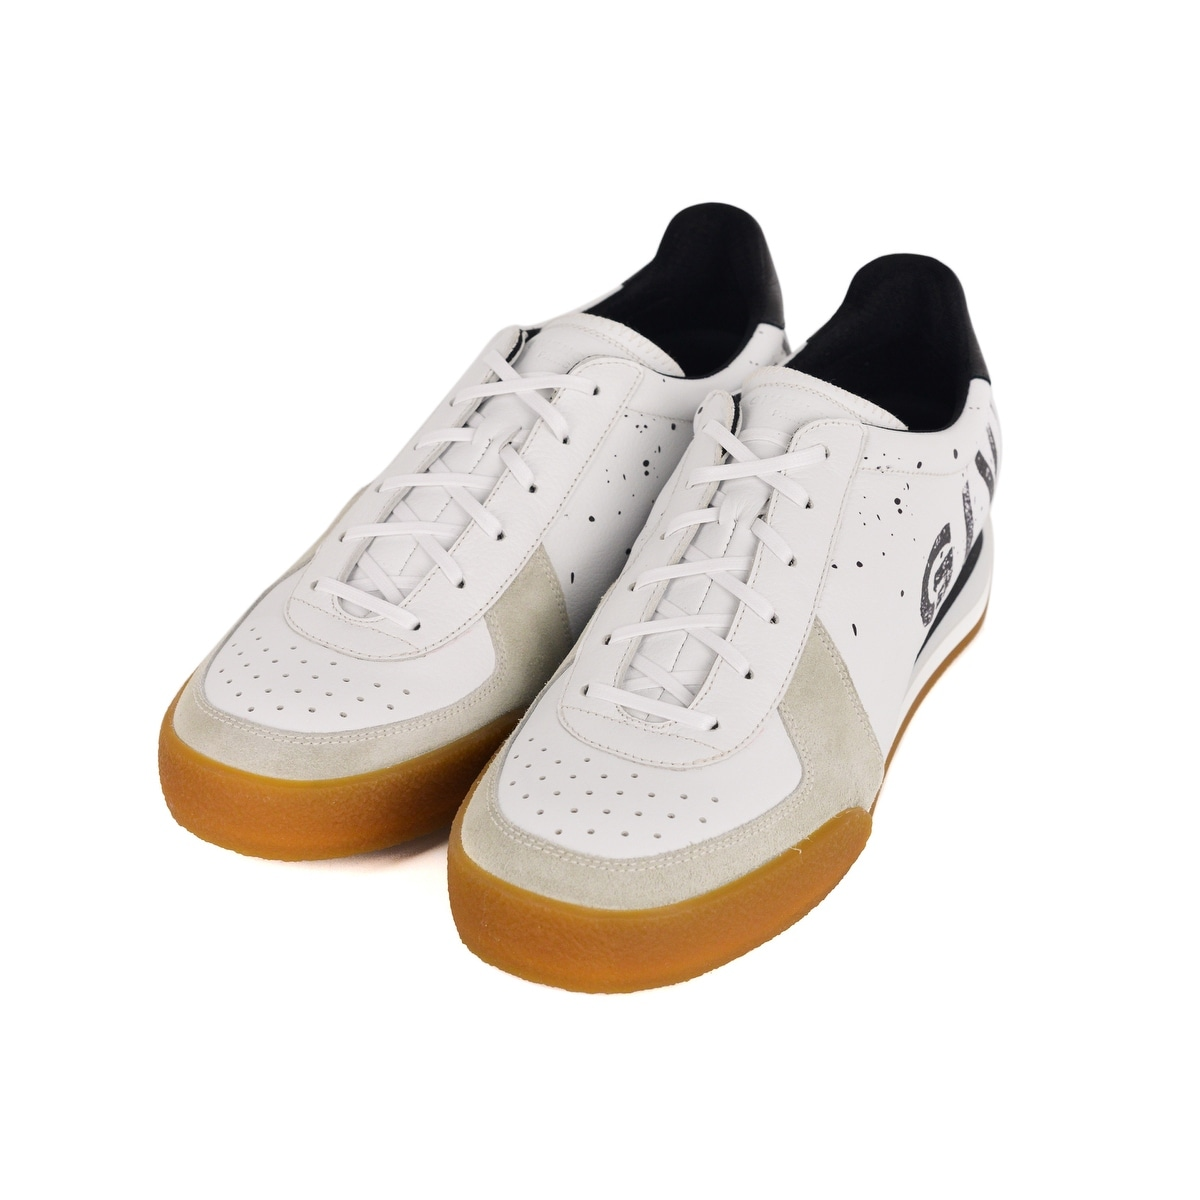 Givenchy Mens White Set 3 Logo Print Leather Tennis Sneakers